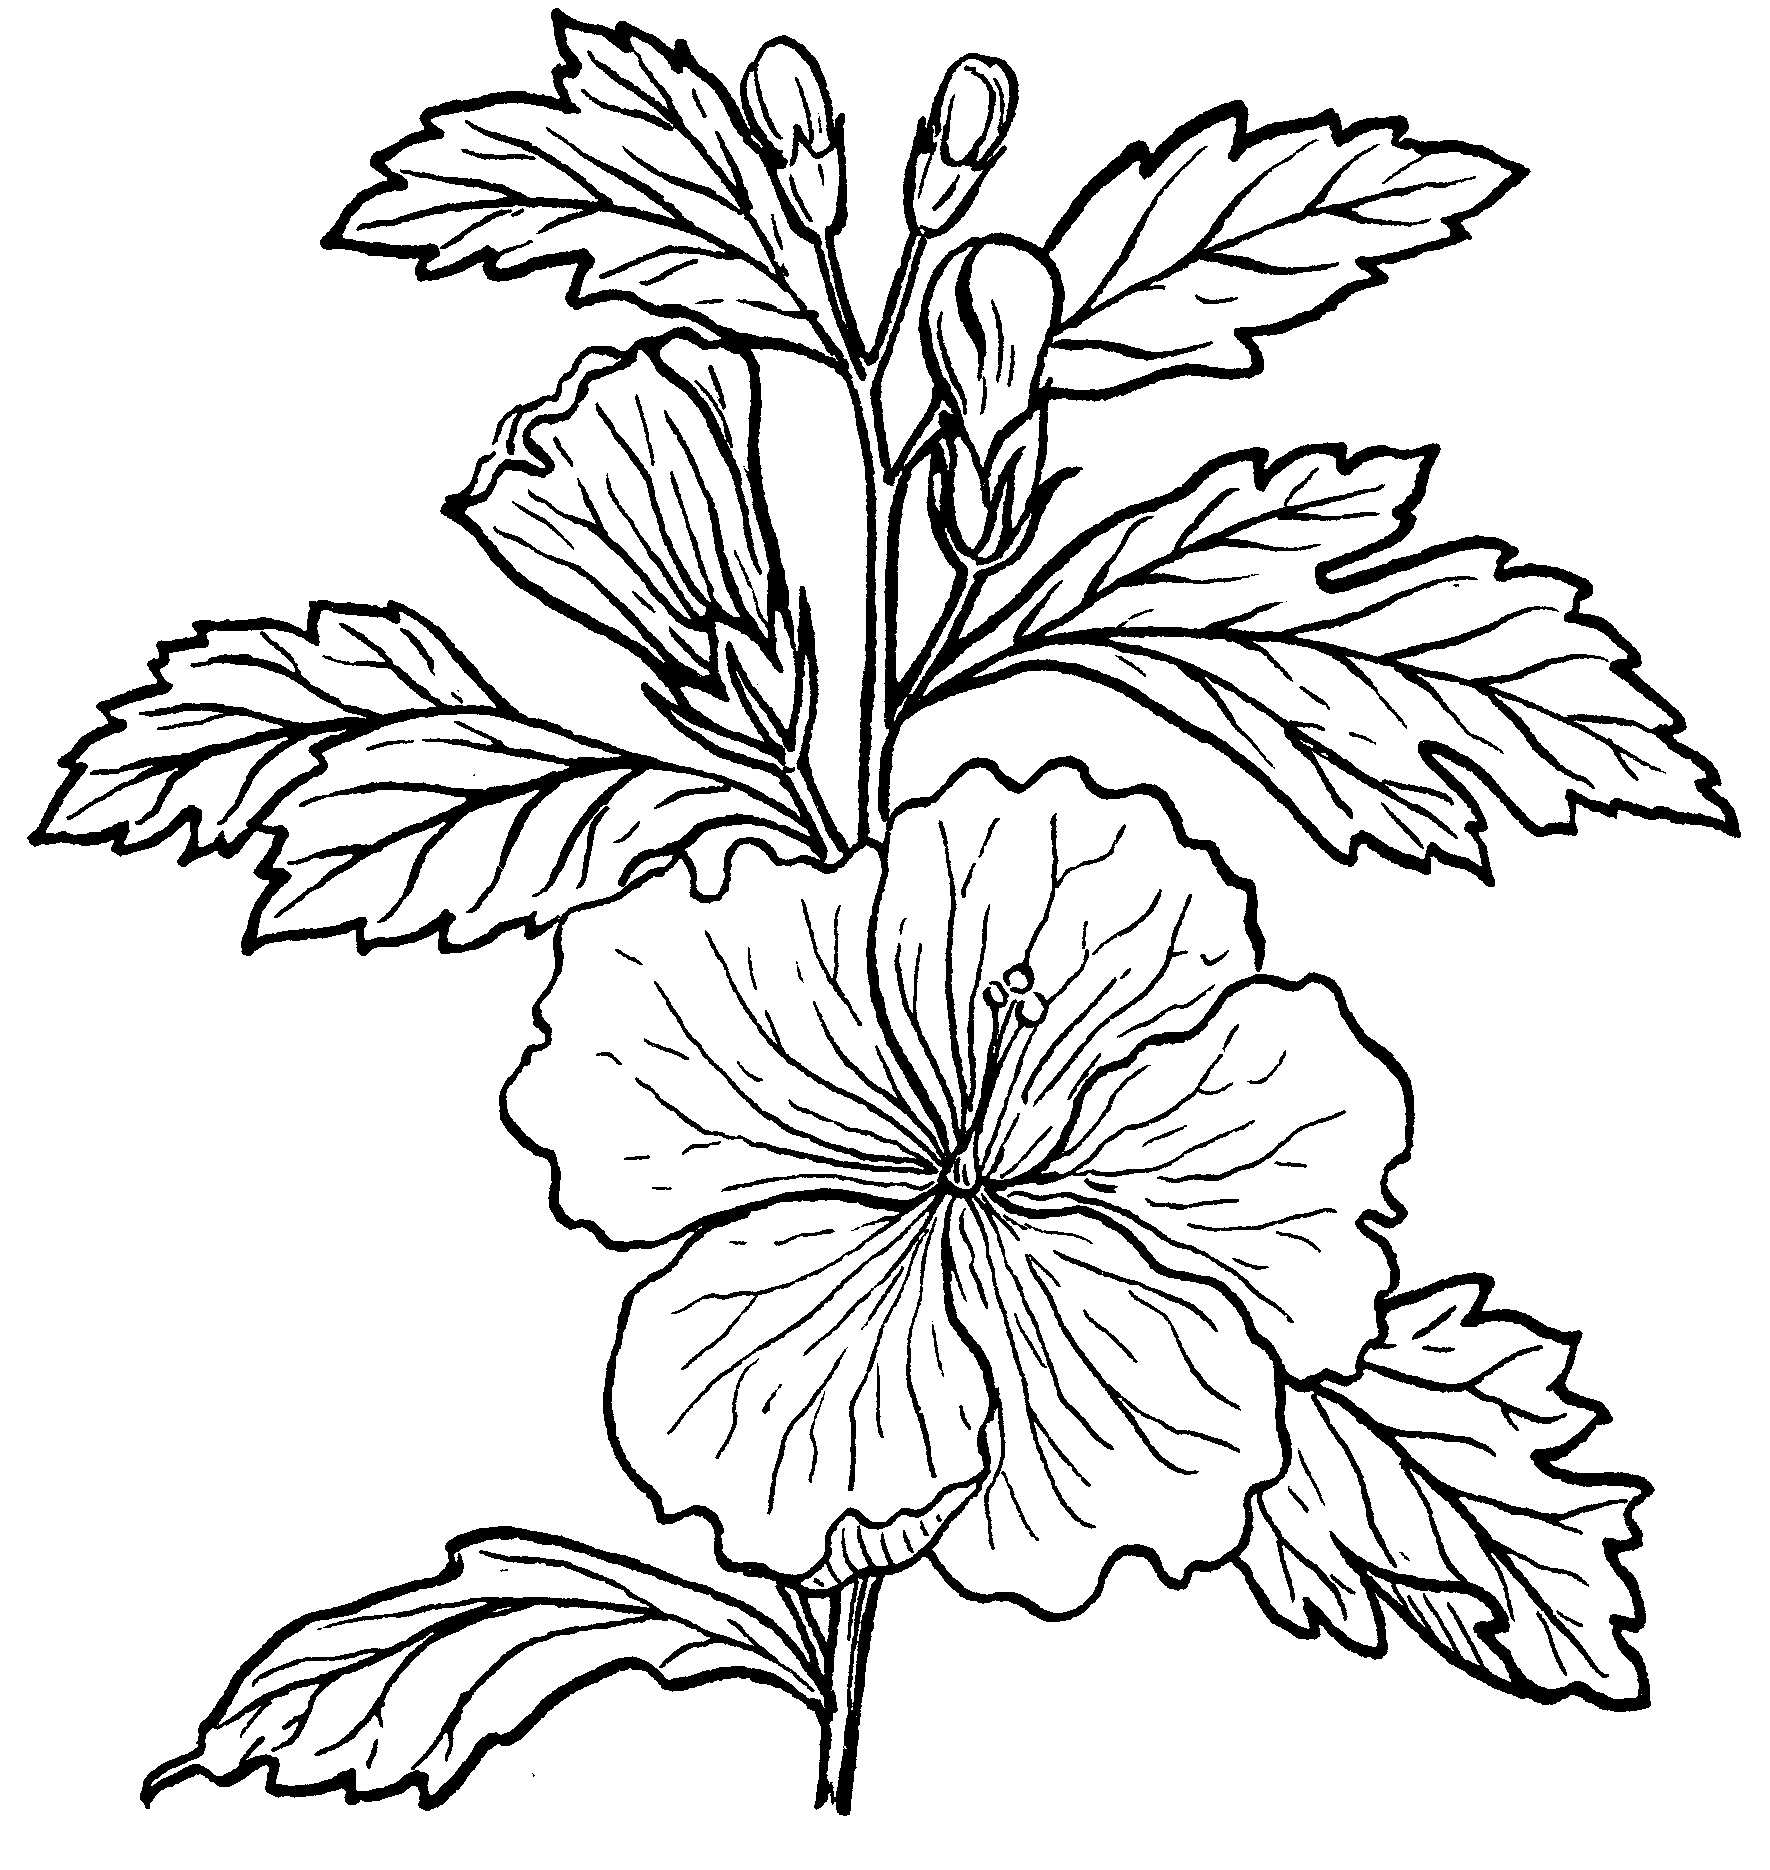 Hibiscus plant drawing at getdrawings free for personal use 1770x1870 hibiscus pinterest hibiscus drawings izmirmasajfo